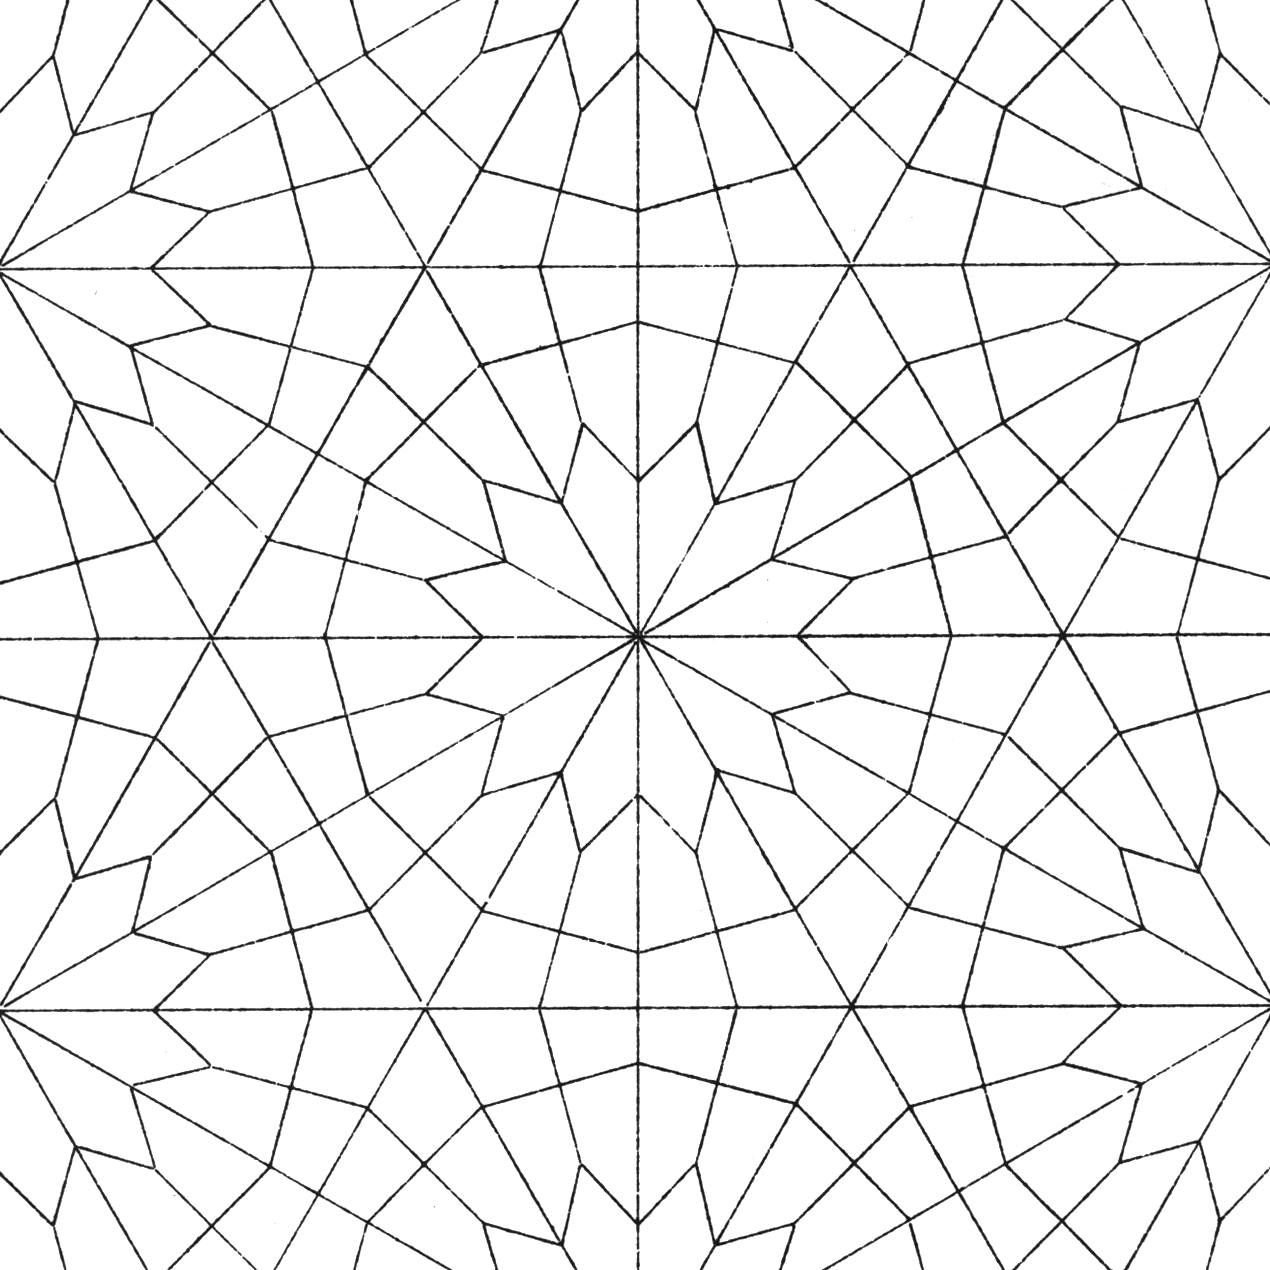 Geometric pattern coloring pages - photo#21